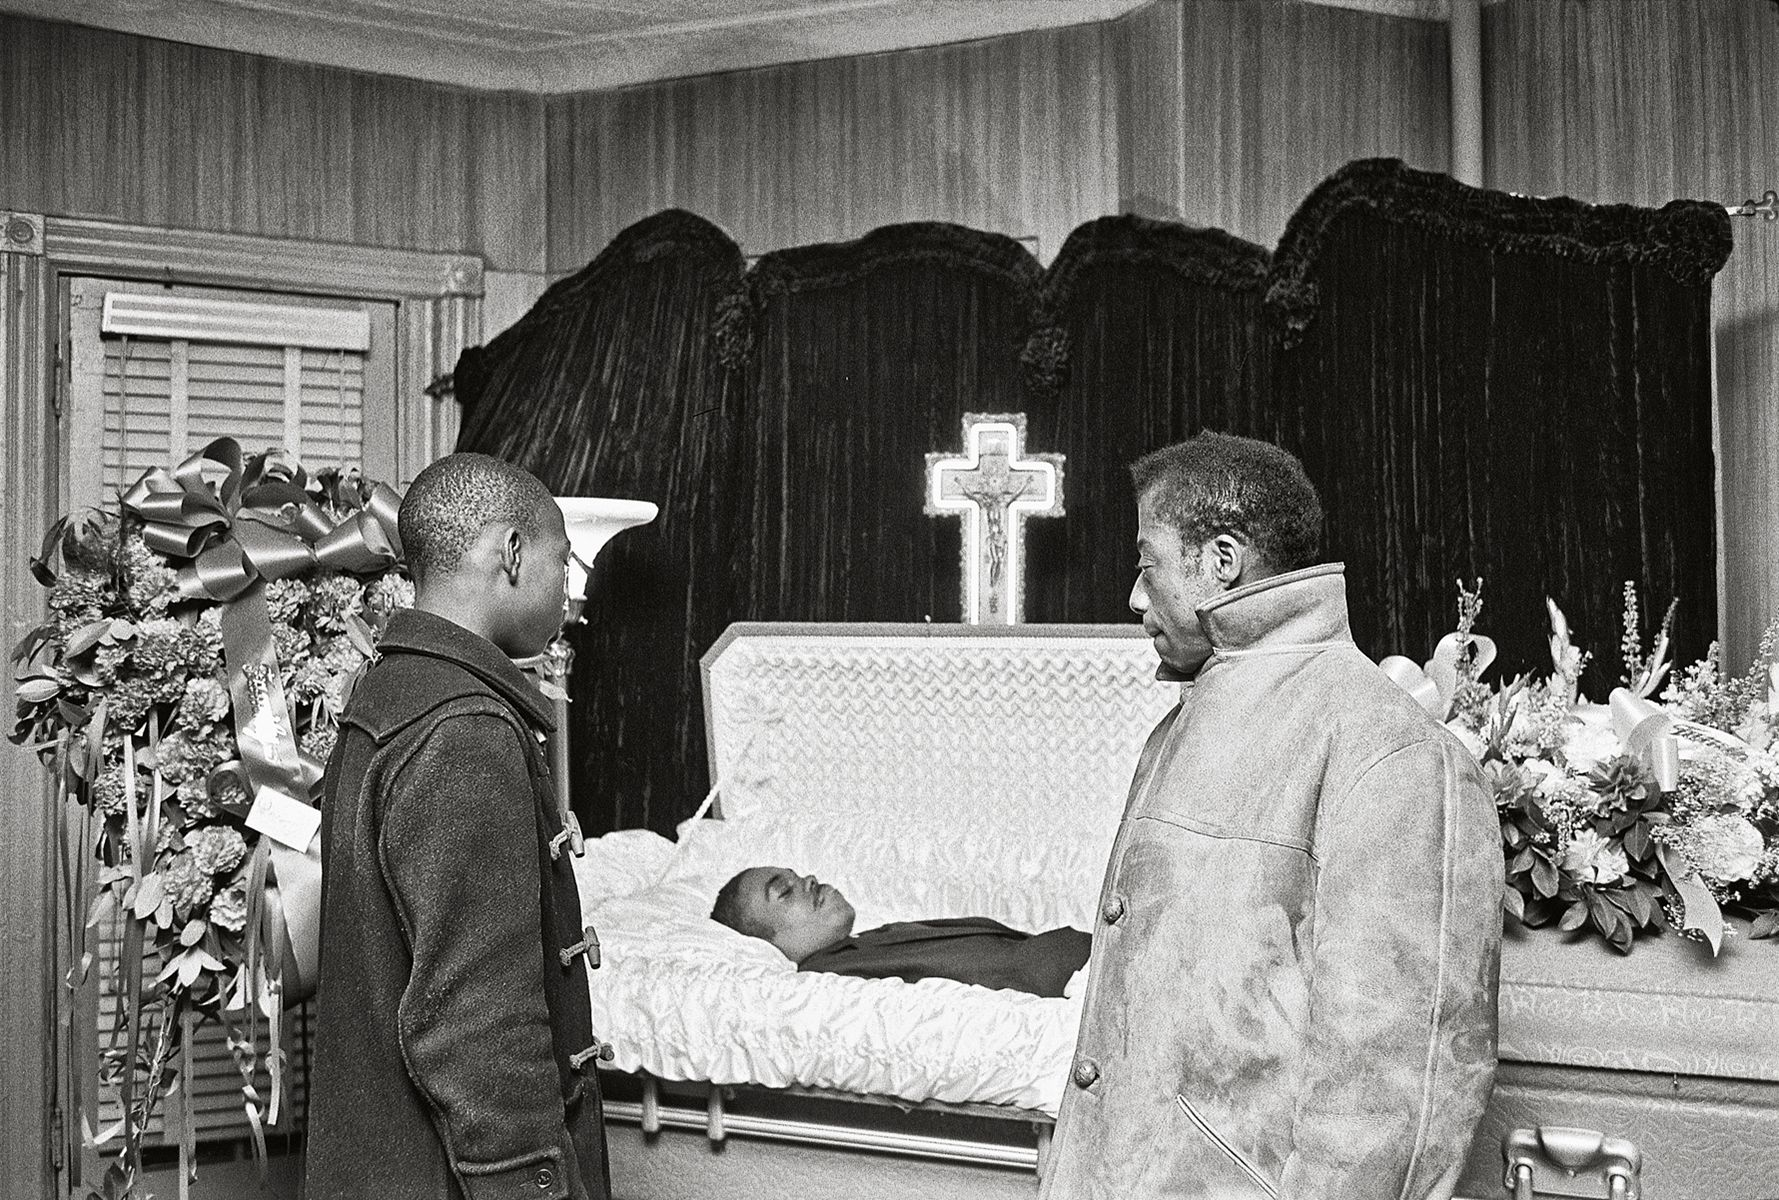 James Baldwin and His Nephew at aFuneral, Harlem,1963, 16 x 20 Inches, Silver Gelatin Photograph, Edition of 25